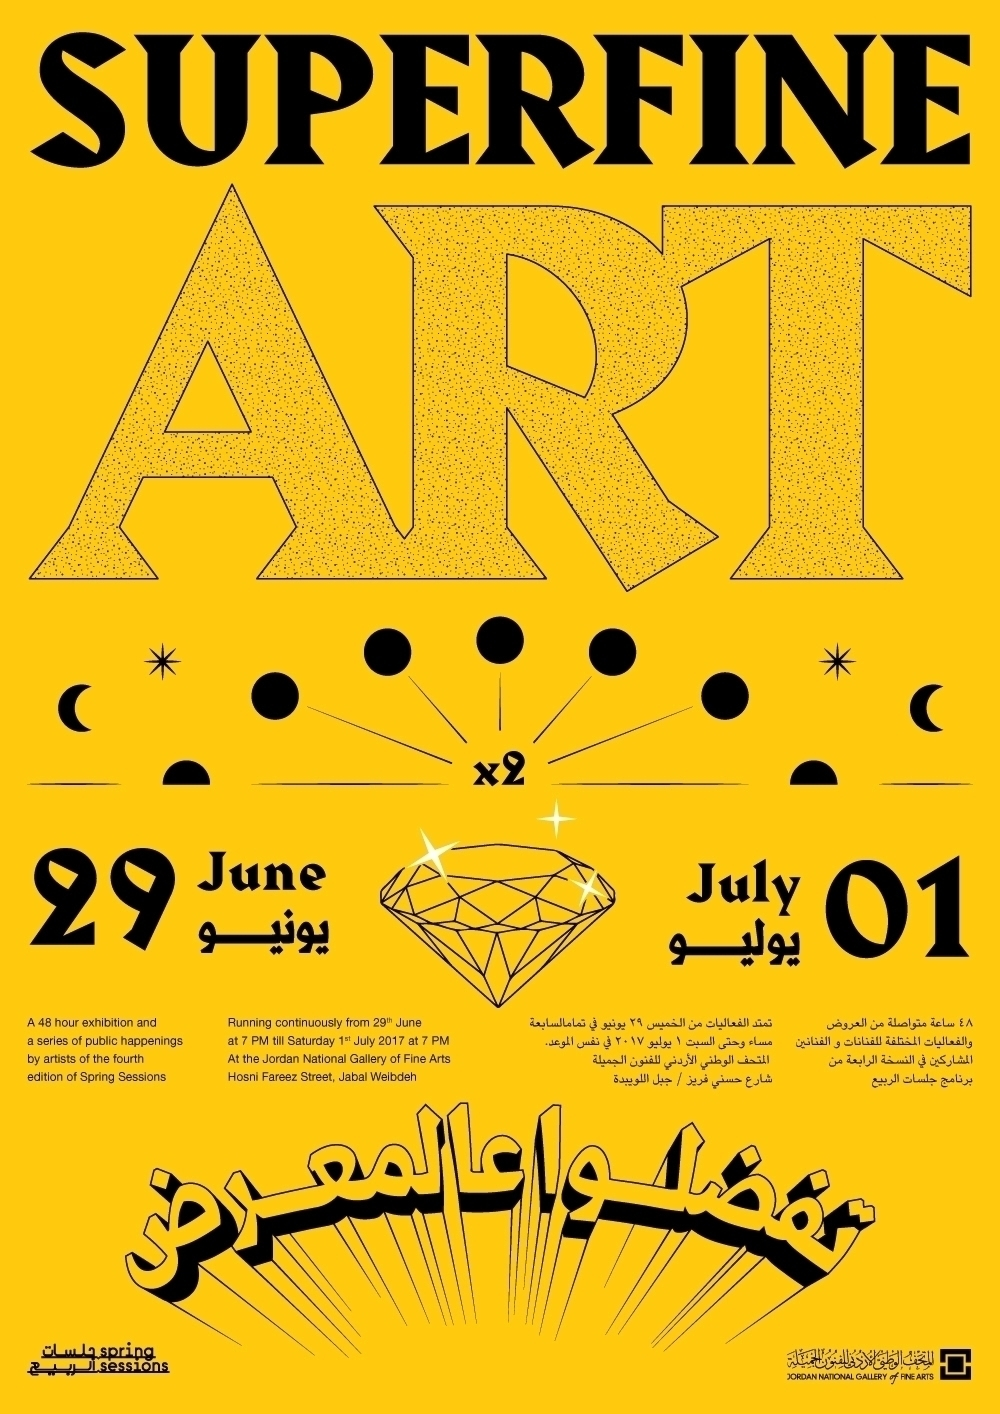 Superfine Art Show Poster - poster - saeed | ello